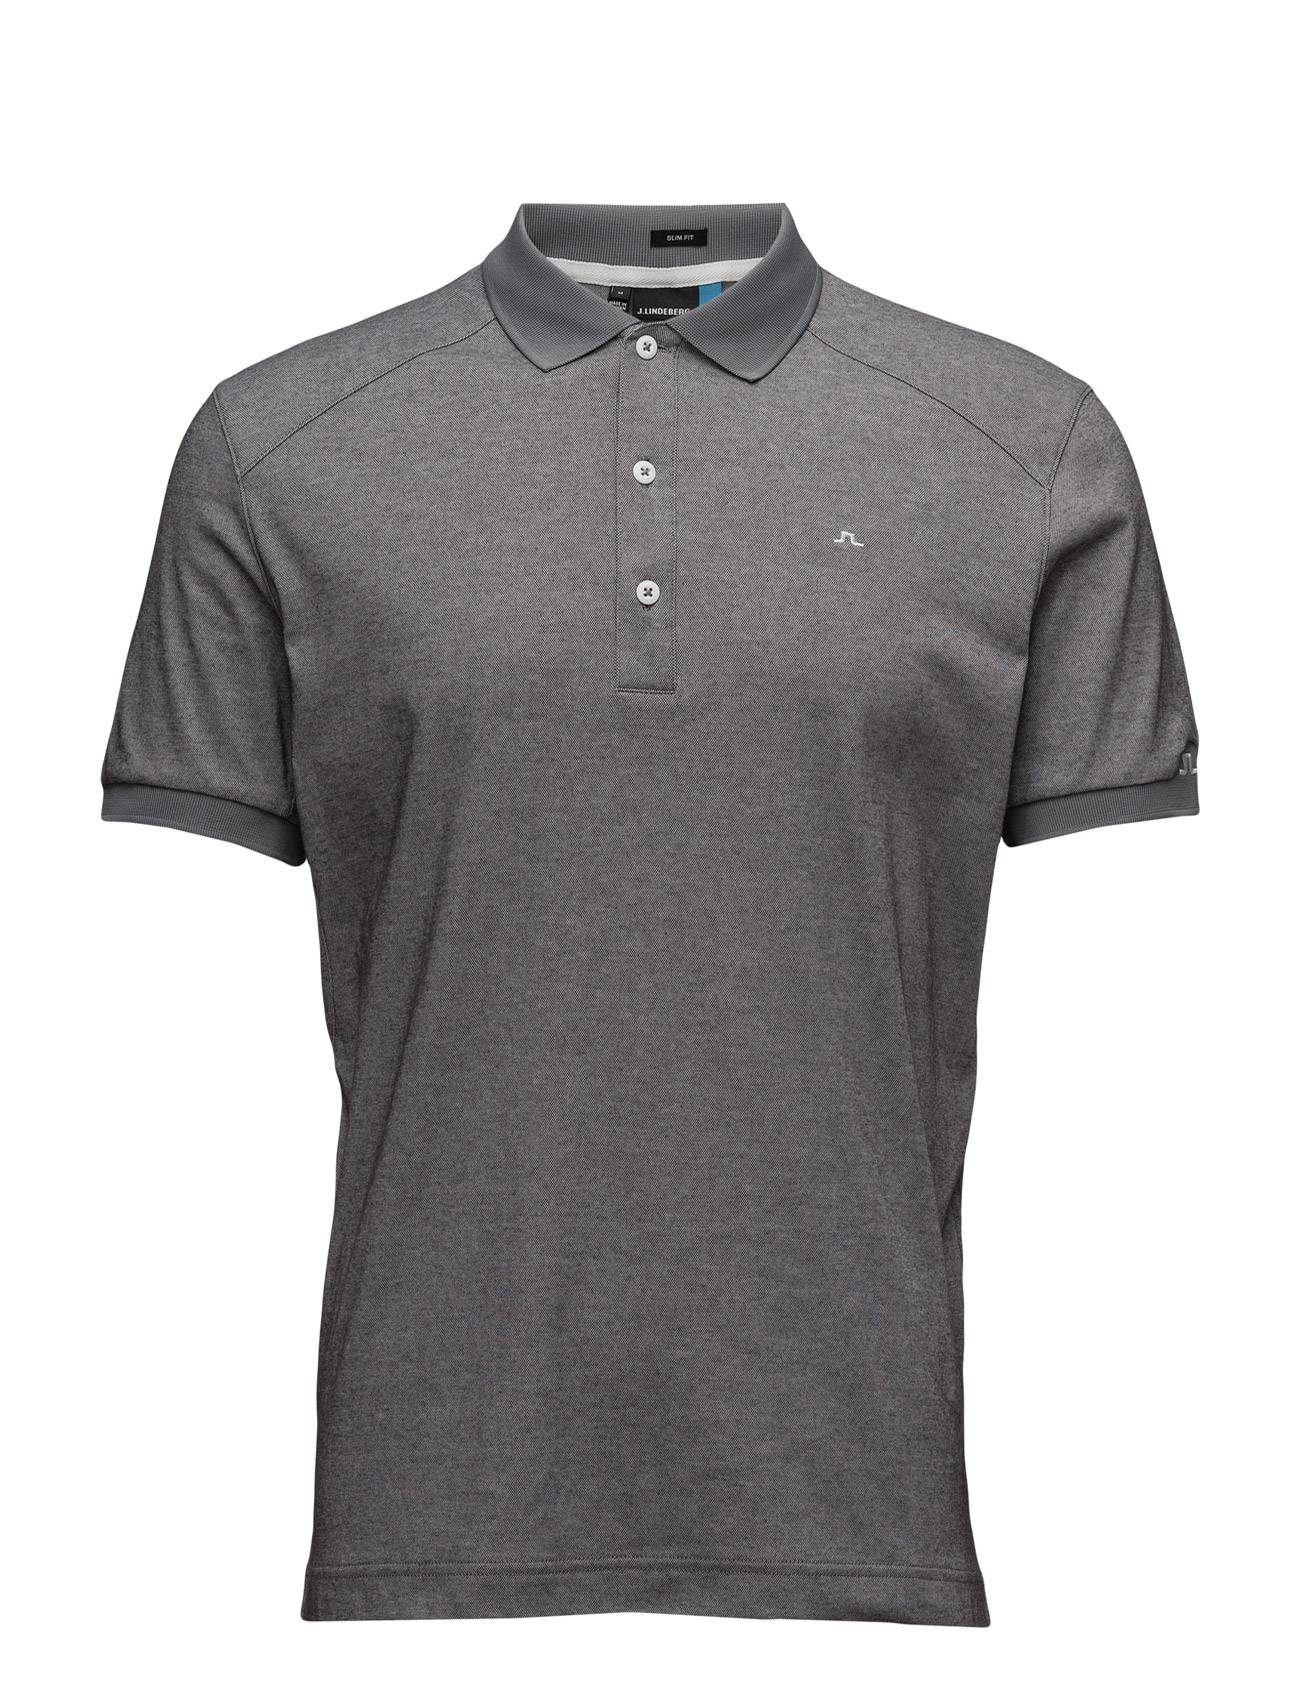 J. Lindeberg Golf M Martin Slim Cotton Poly